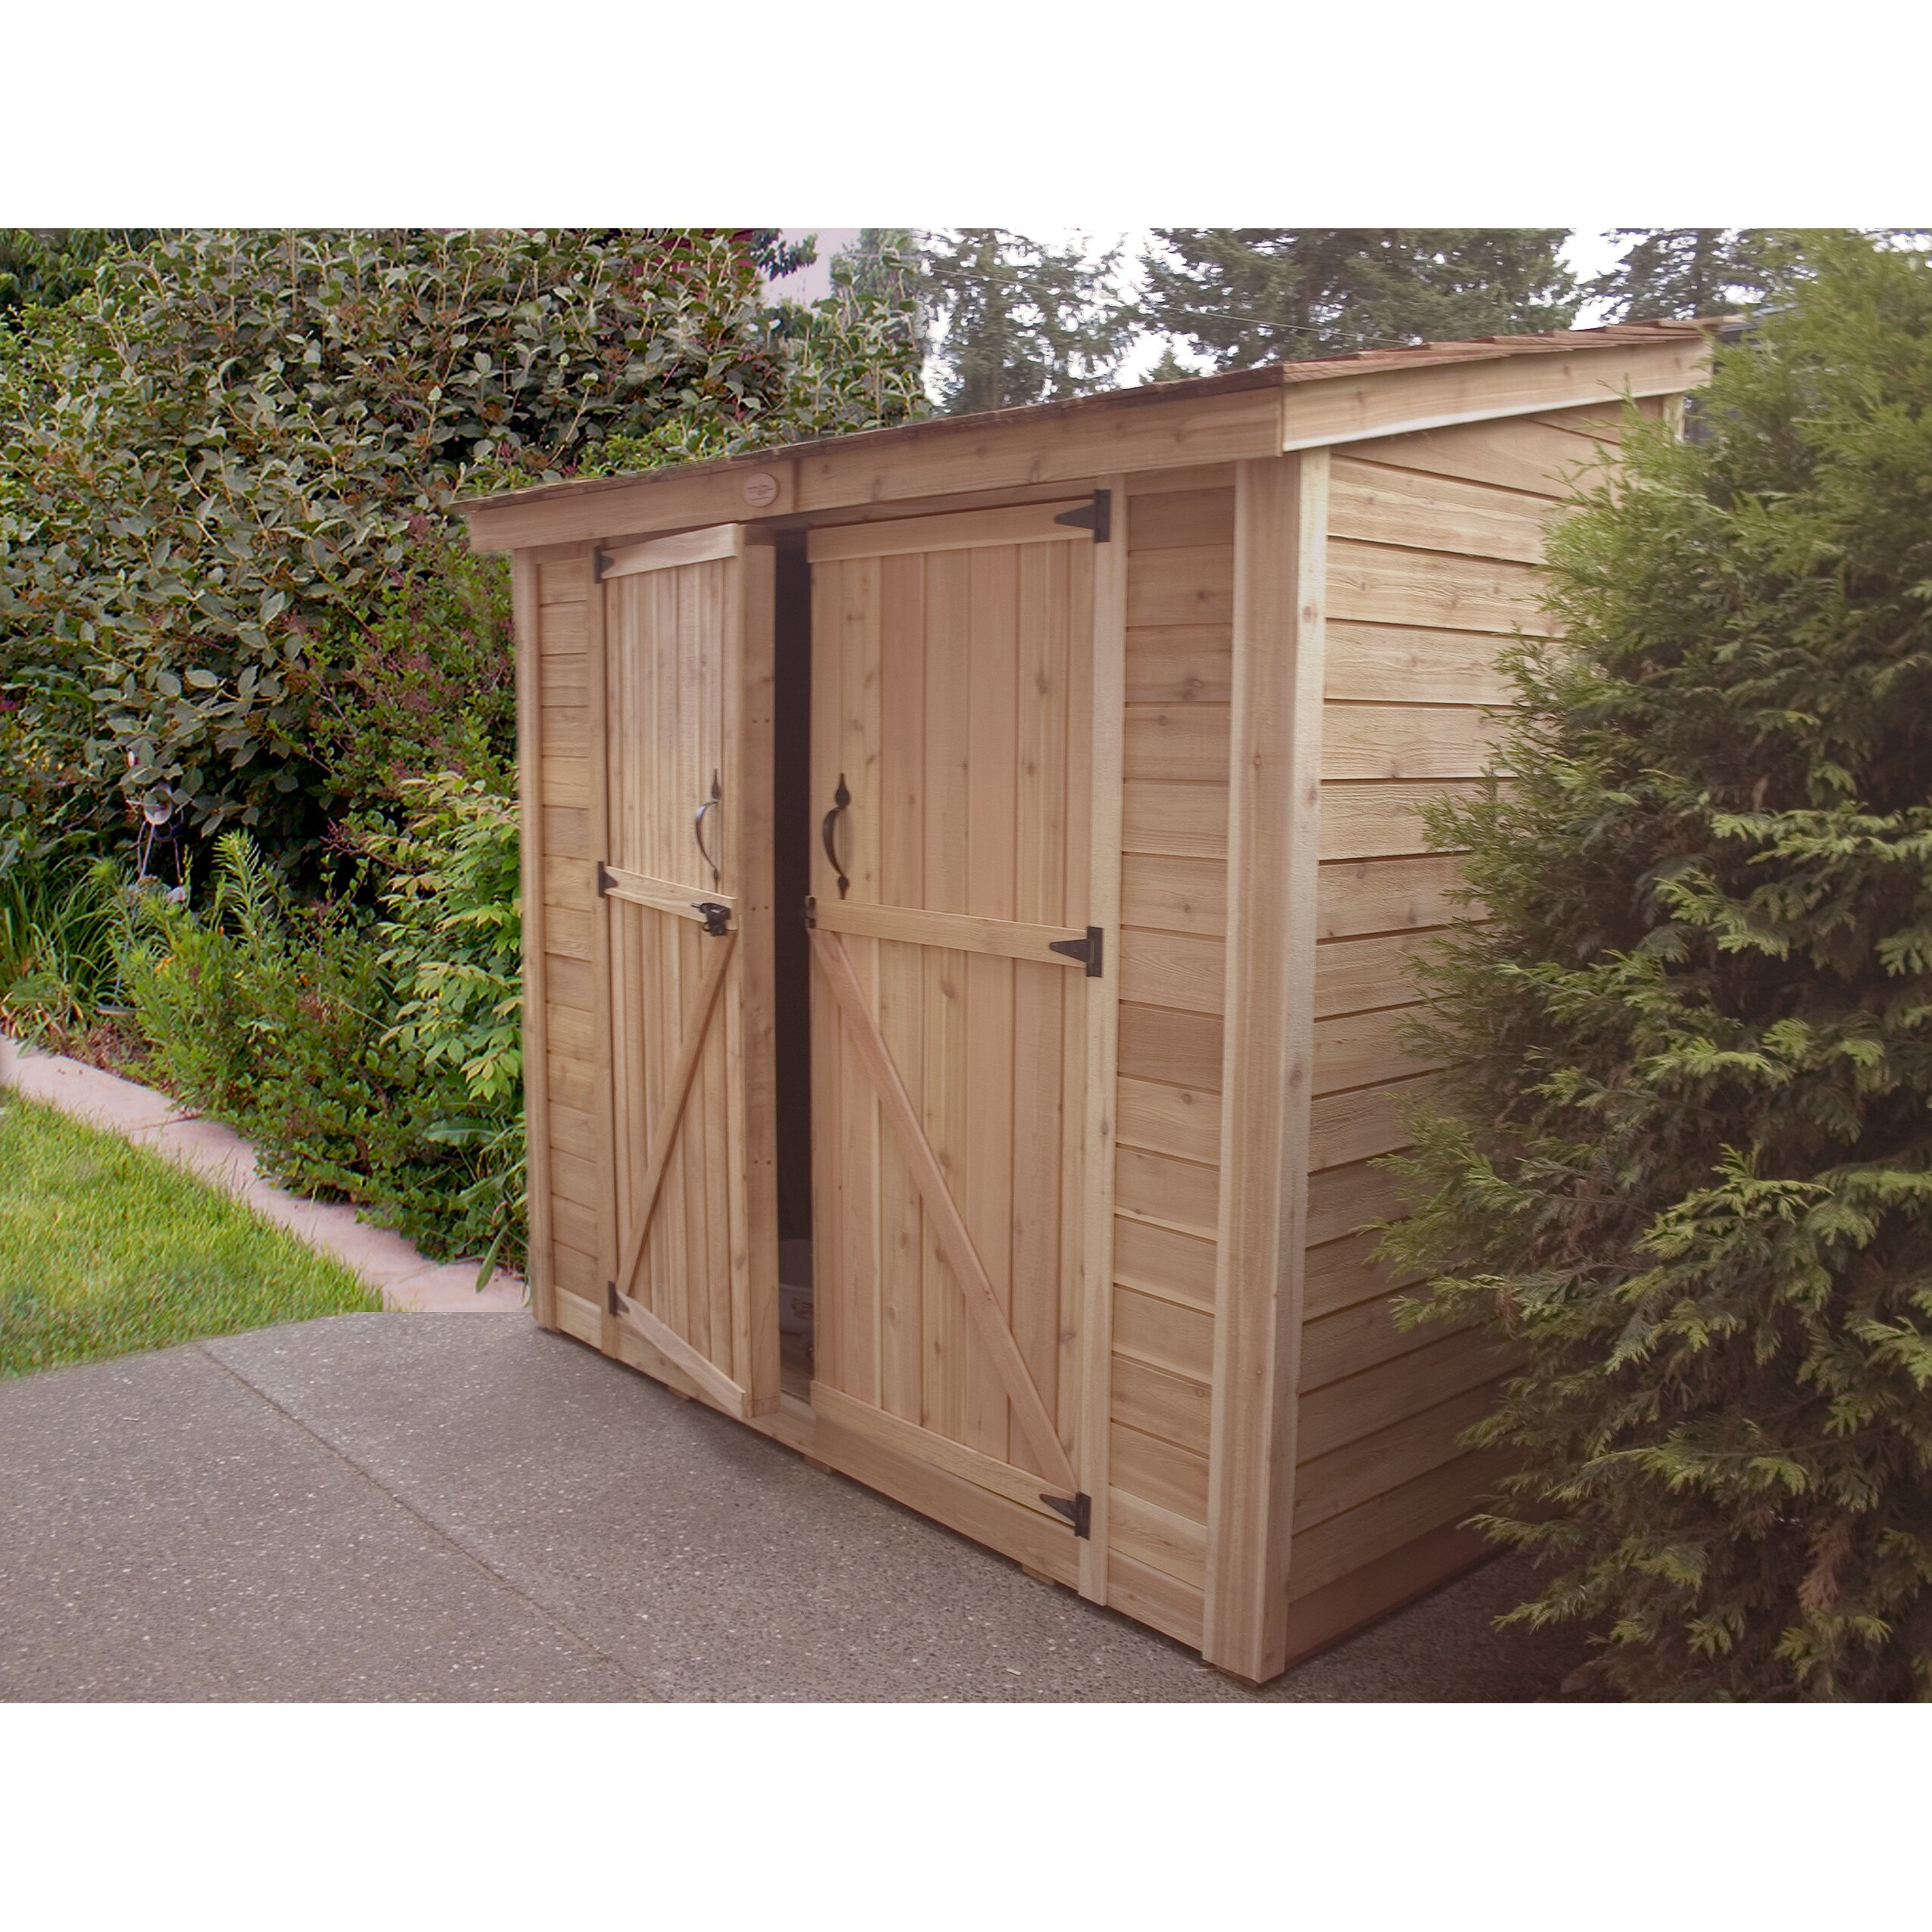 Outdoor Living Today Sheds : Outdoor Living Today SpaceSaver 8 Ft. W x 4 Ft. D Garden ...